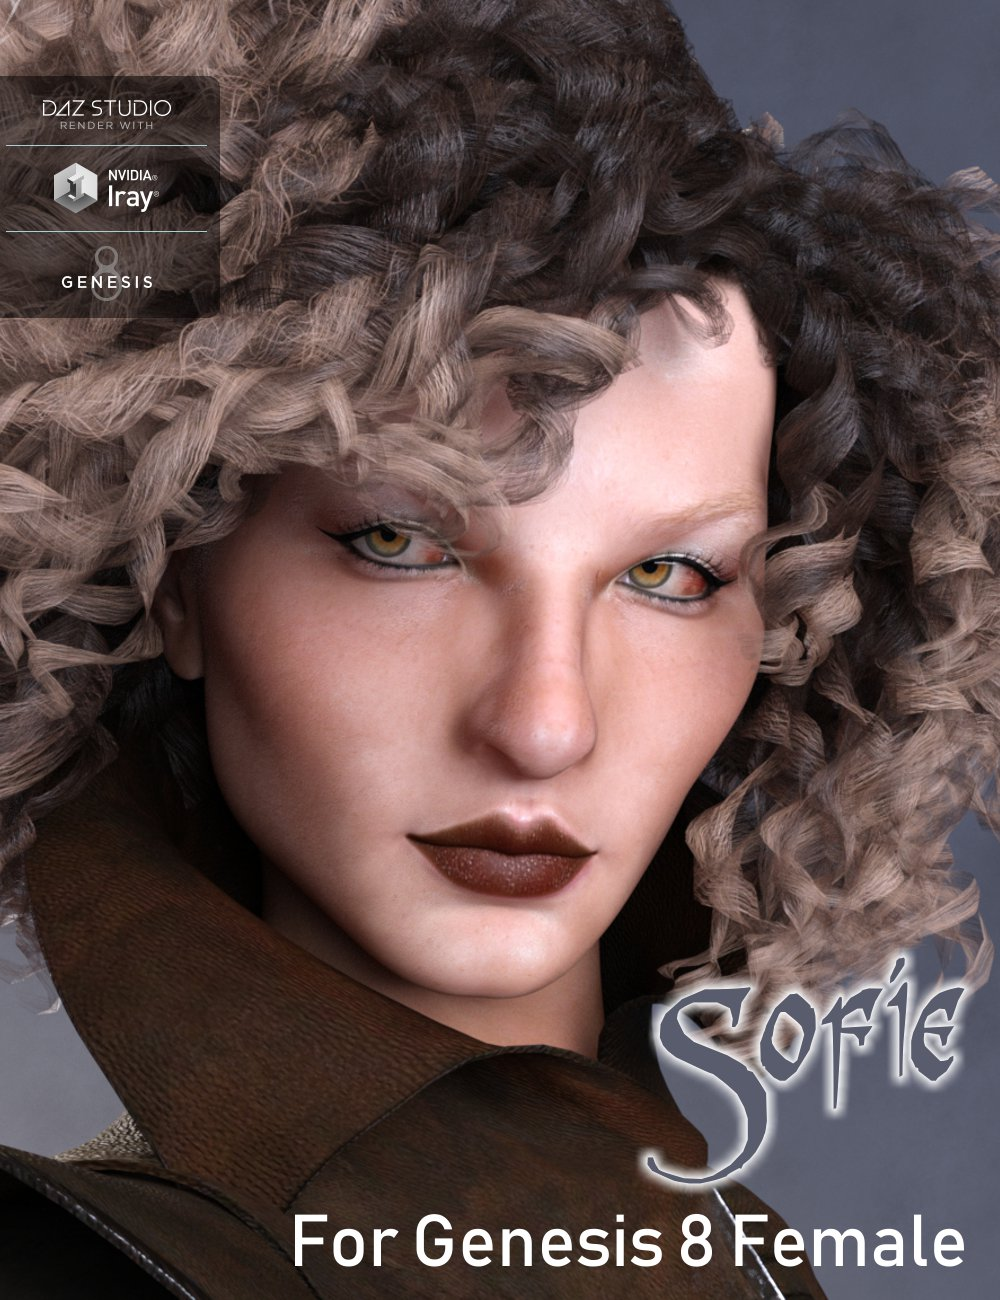 Sofie for Genesis 8 Female